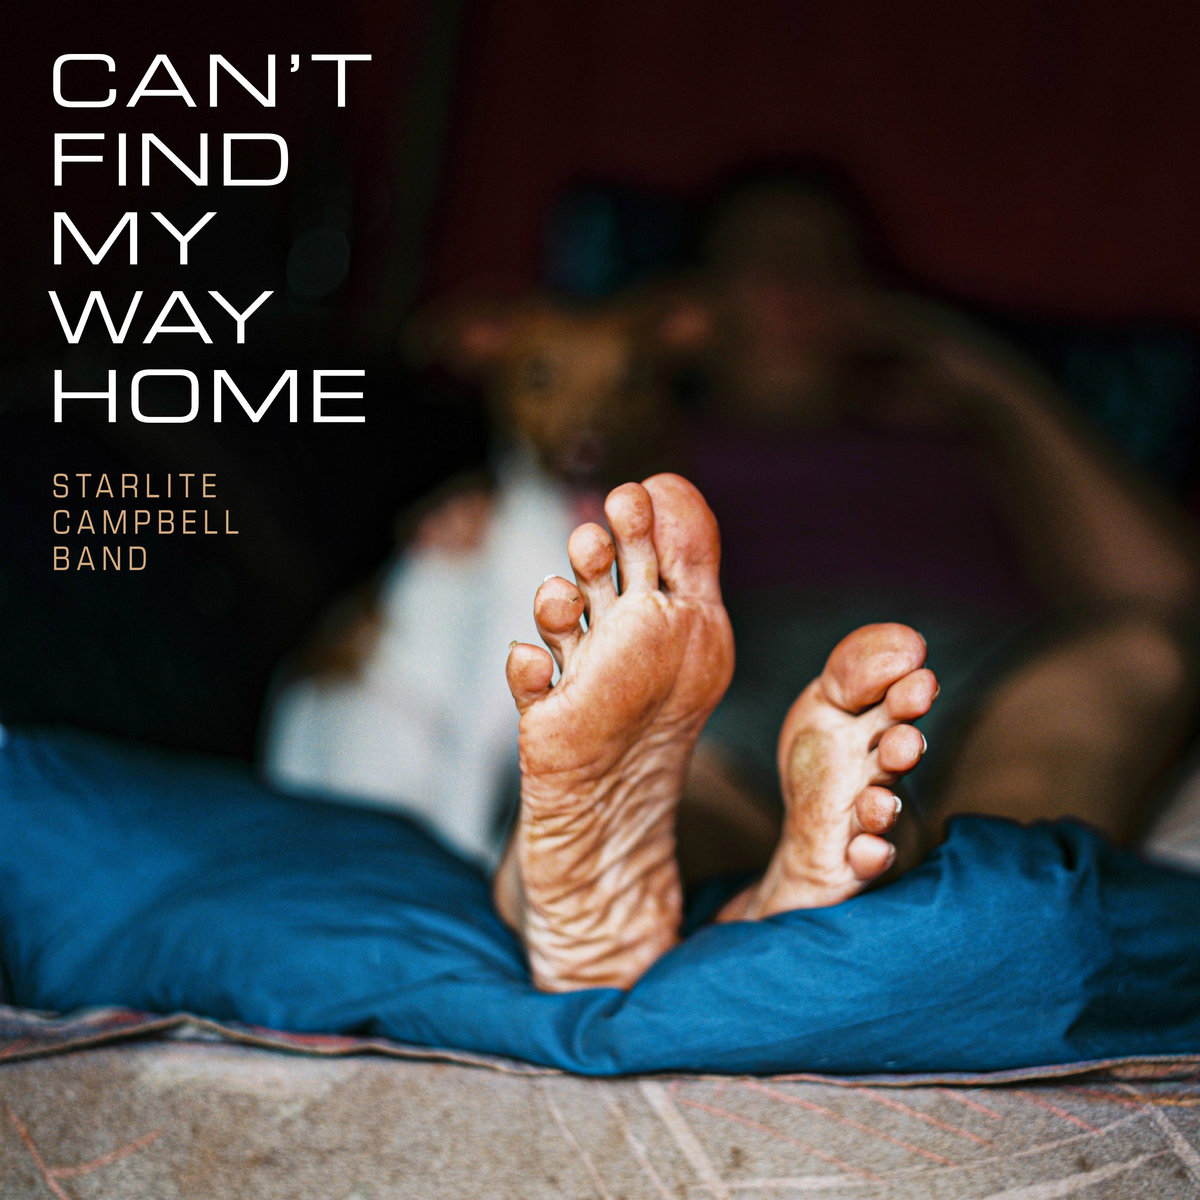 Can't Find My Way Home by Starlite Campbell Band